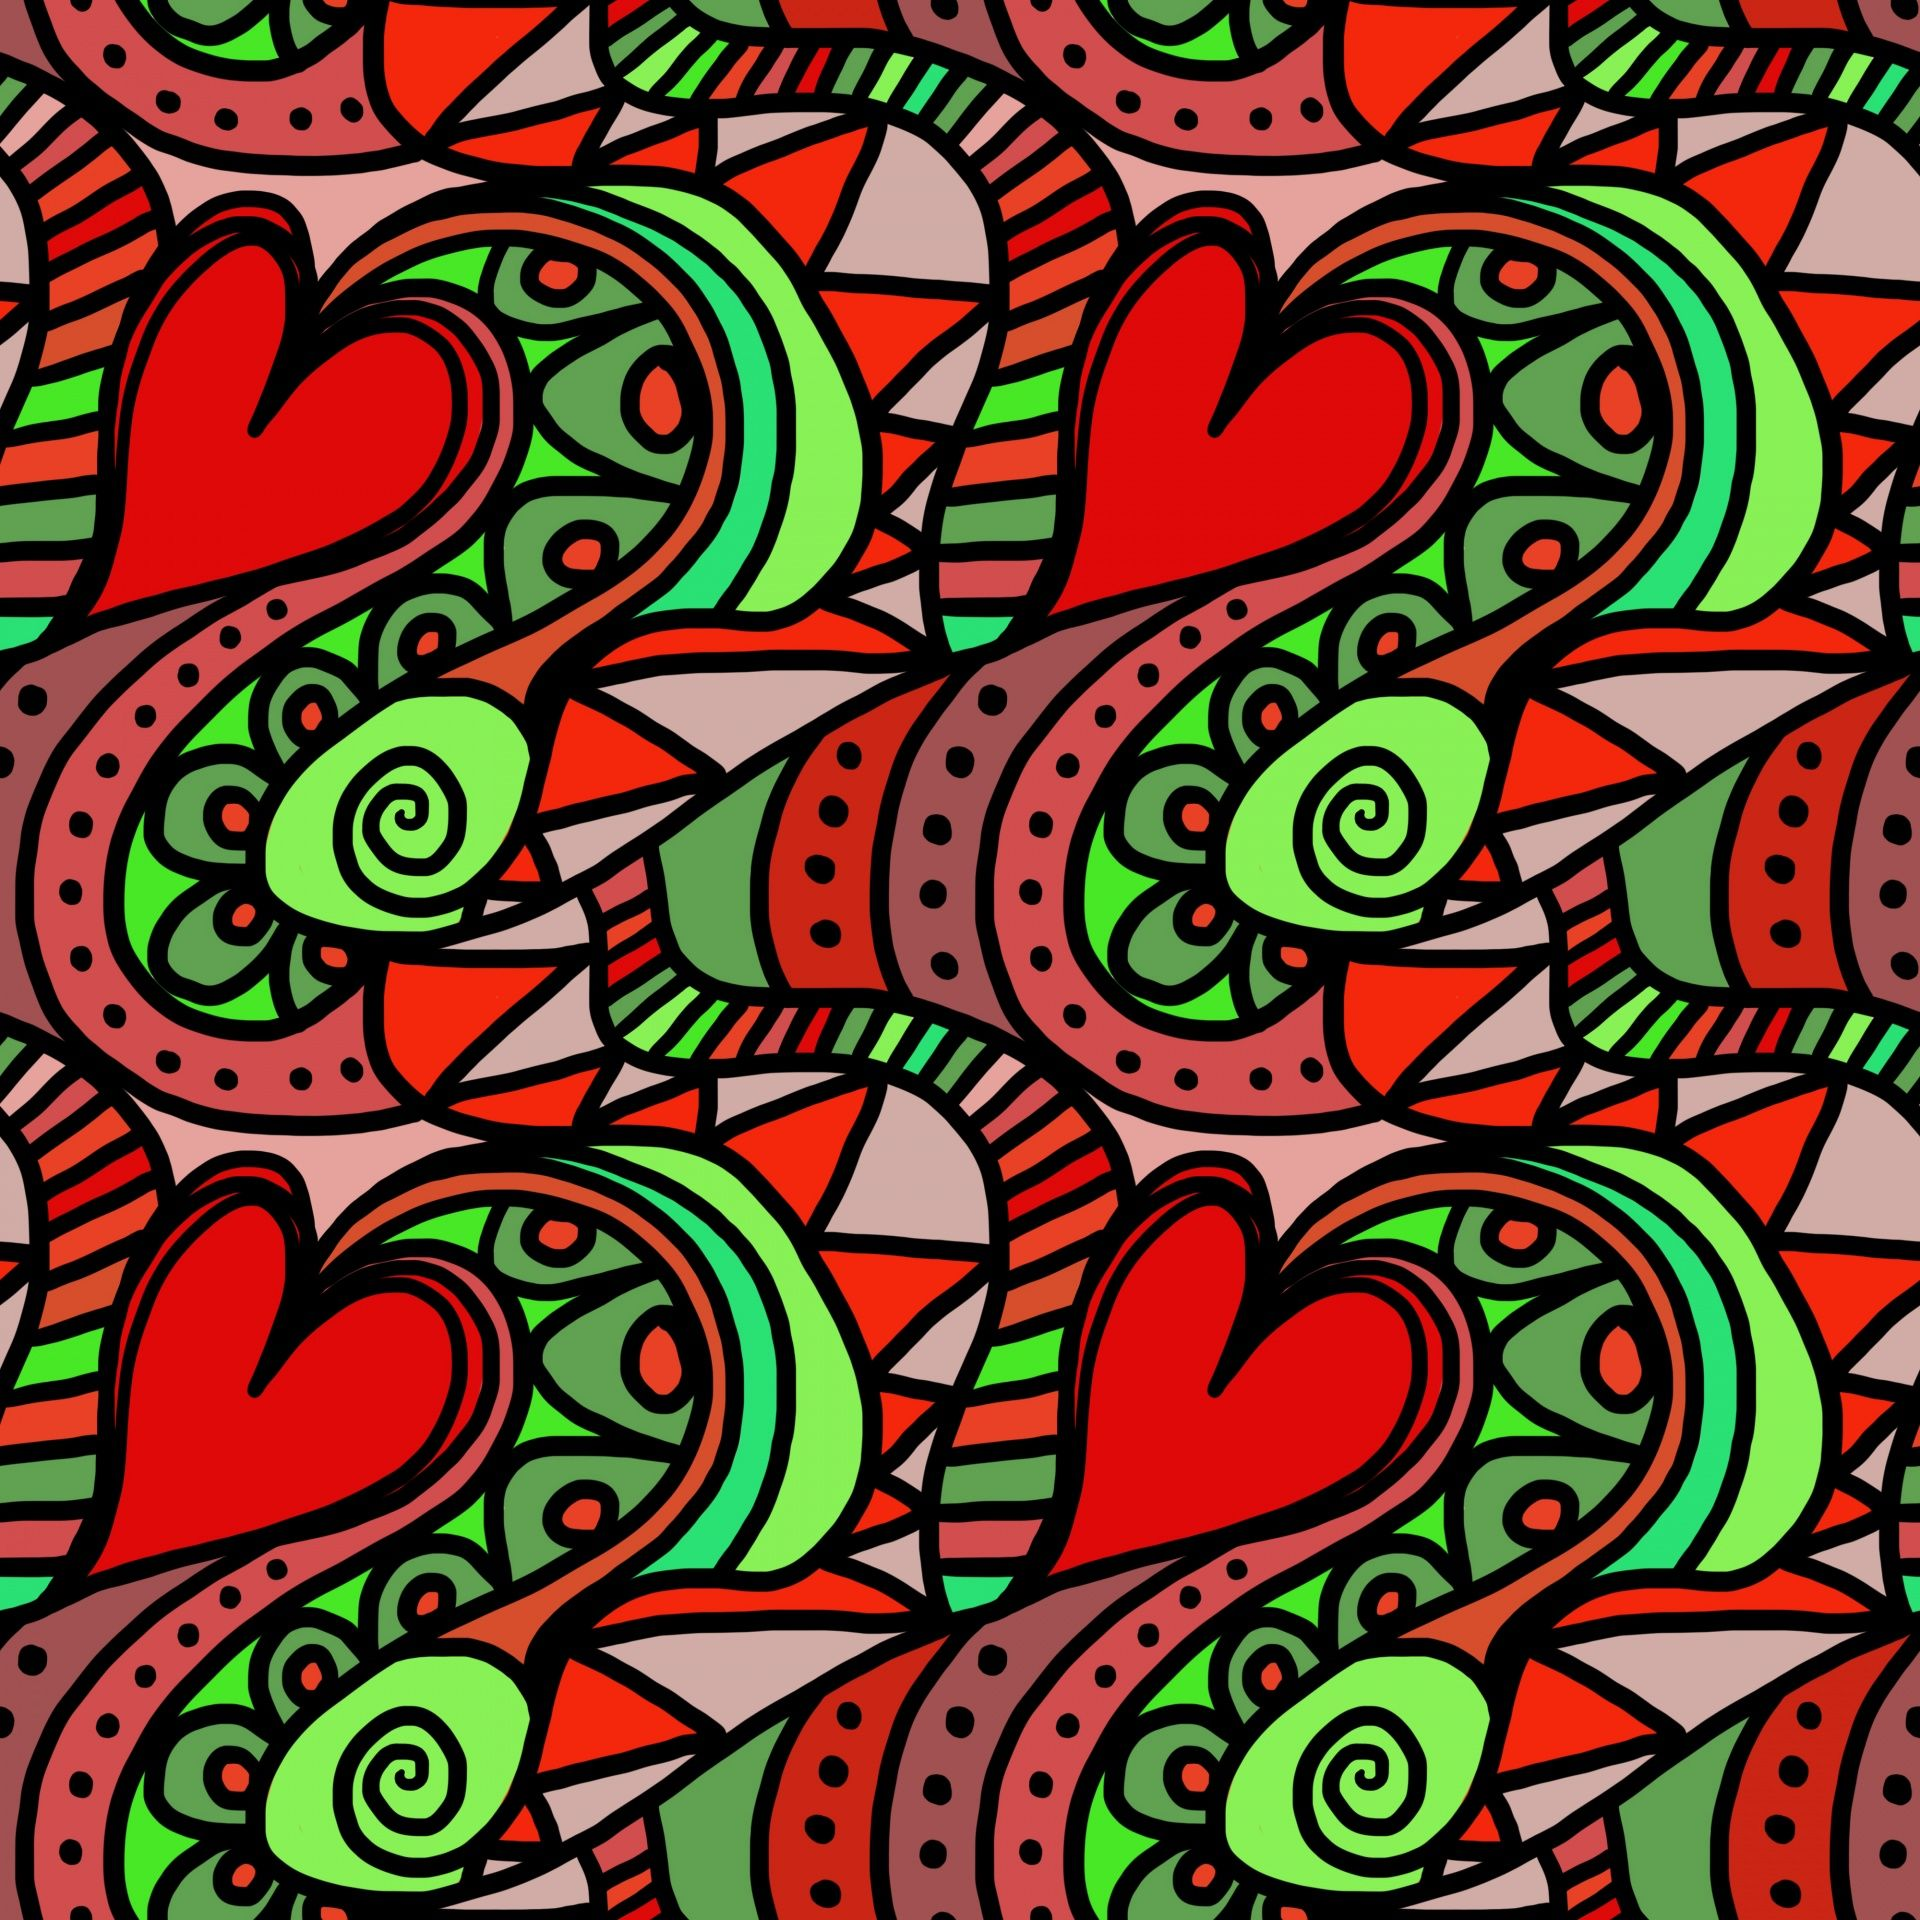 Red Green Hearts And Flowers Floral Cotton Linen Tablecloth 52 Find This Pin More On Designs Public Domain